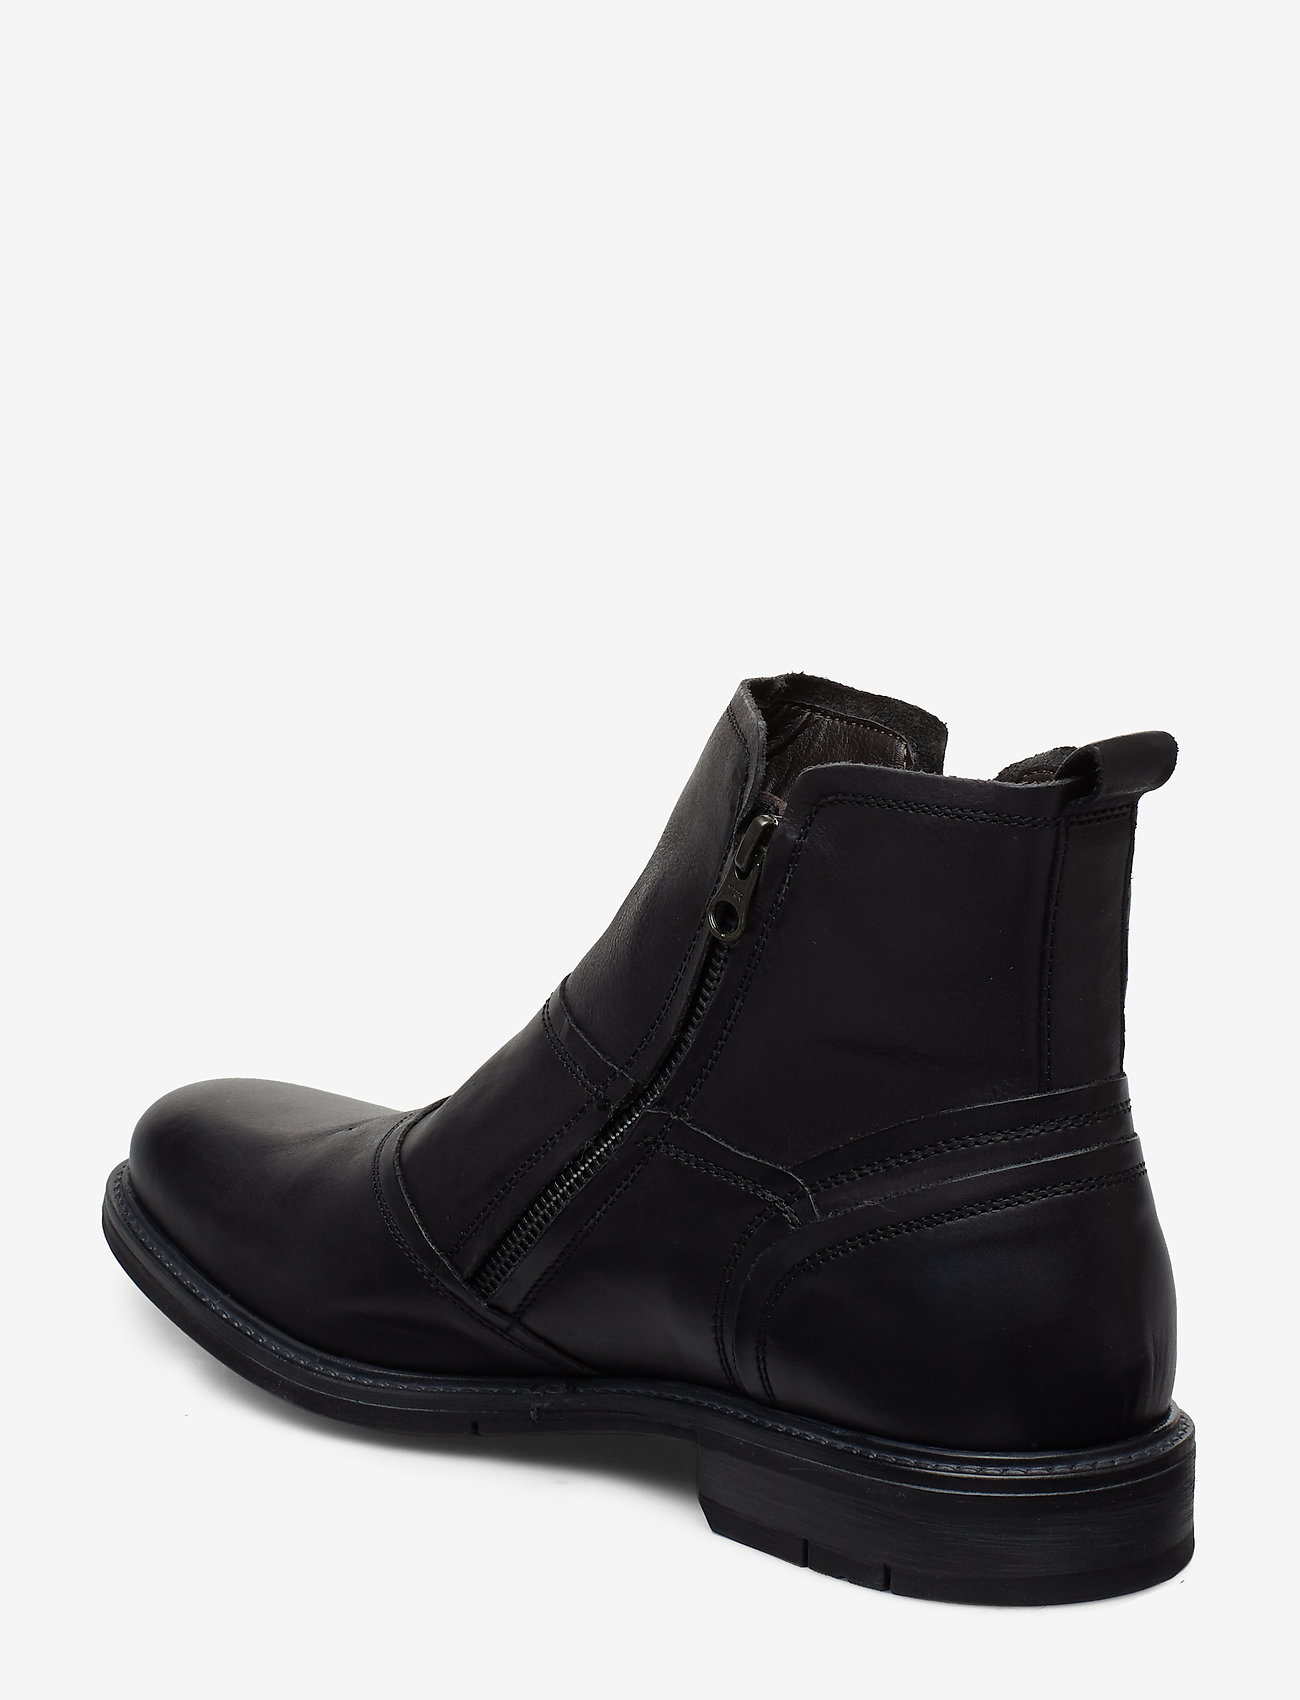 2150 (Black) - Playboy Footwear